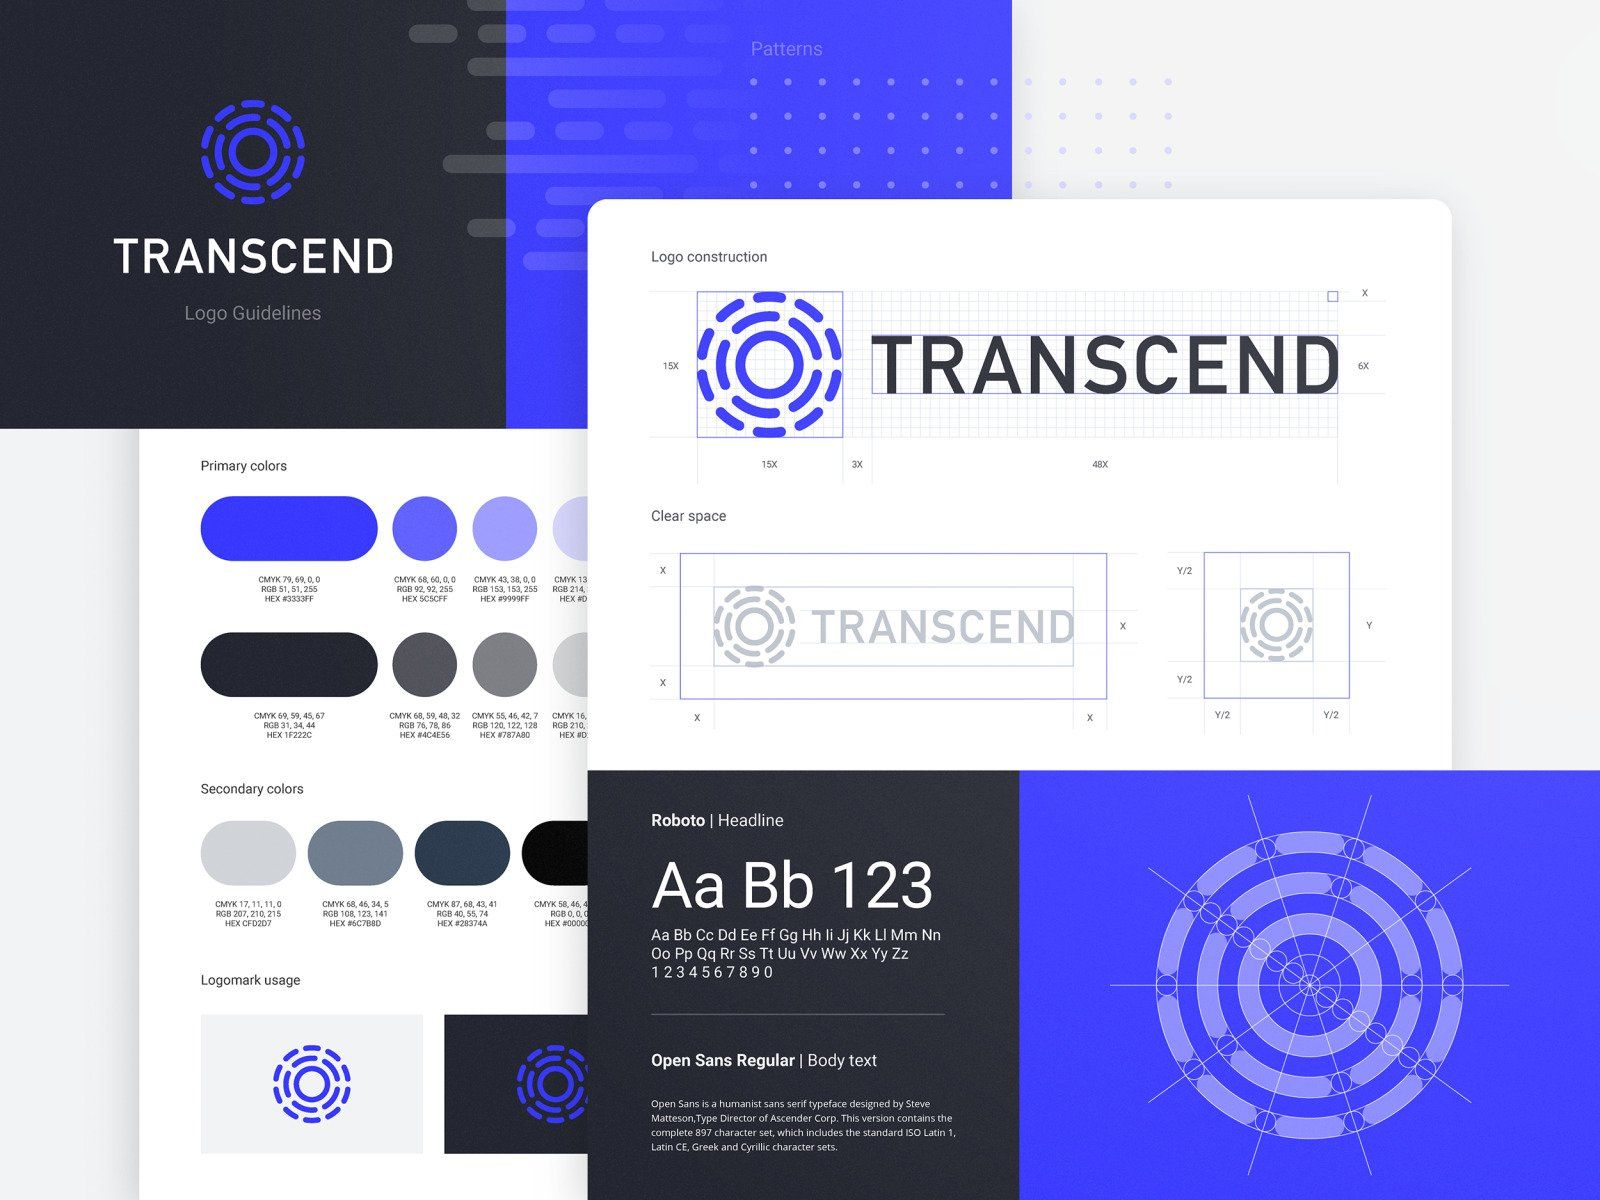 4 Popular Techniques for Designing Best Tech Startup Logos